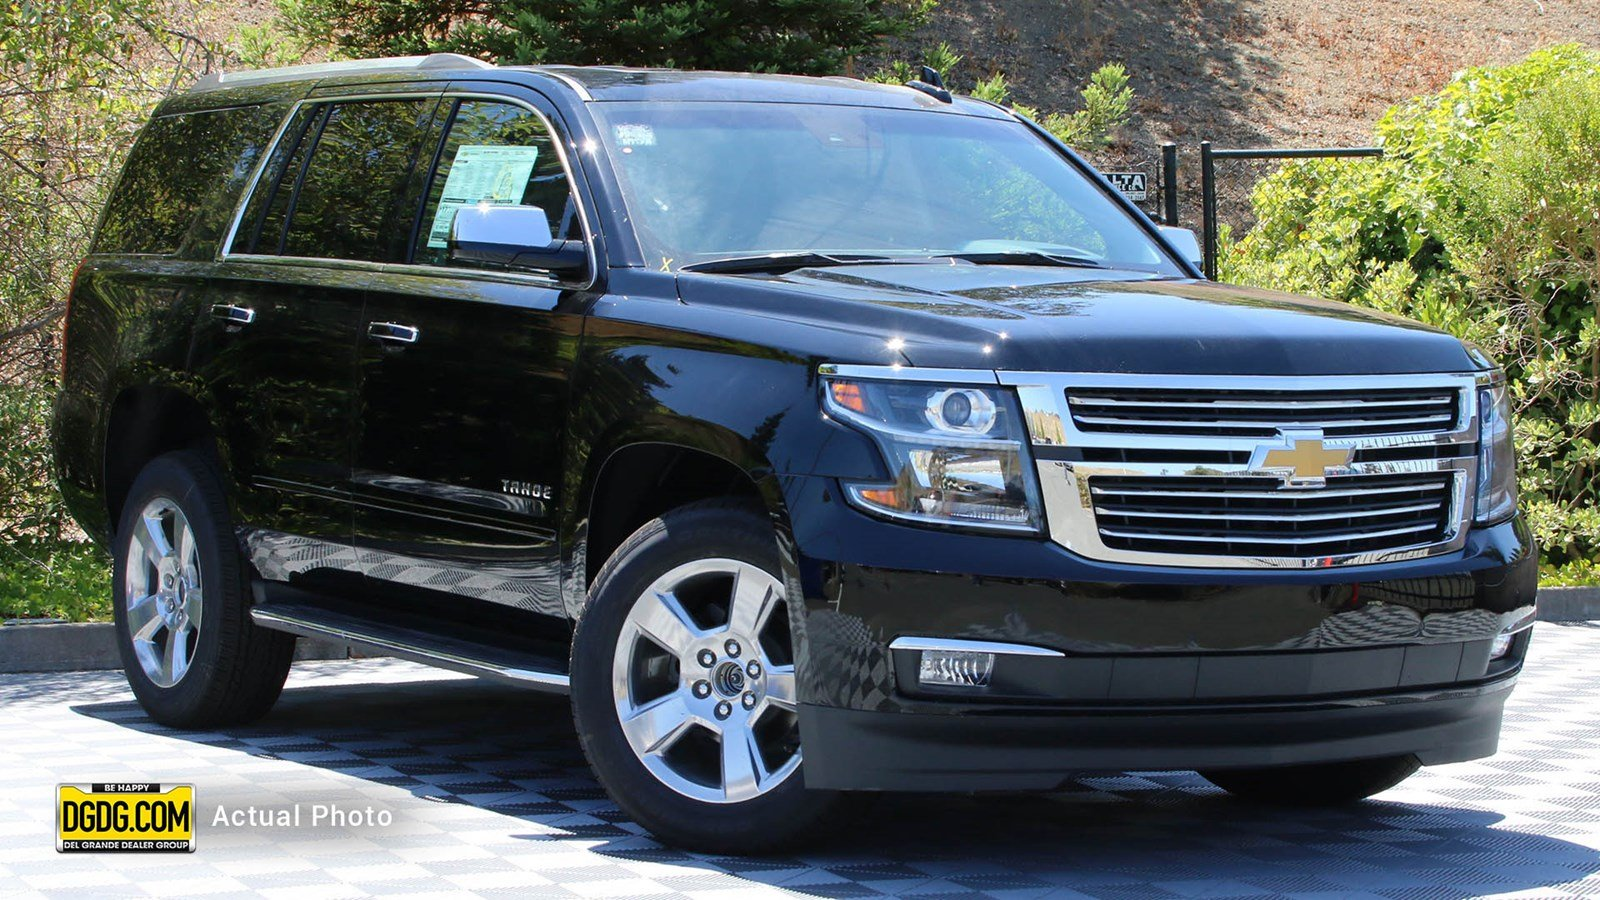 98 Great Pictures Of 2020 Chevrolet Tahoe Pricing for Pictures Of 2020 Chevrolet Tahoe